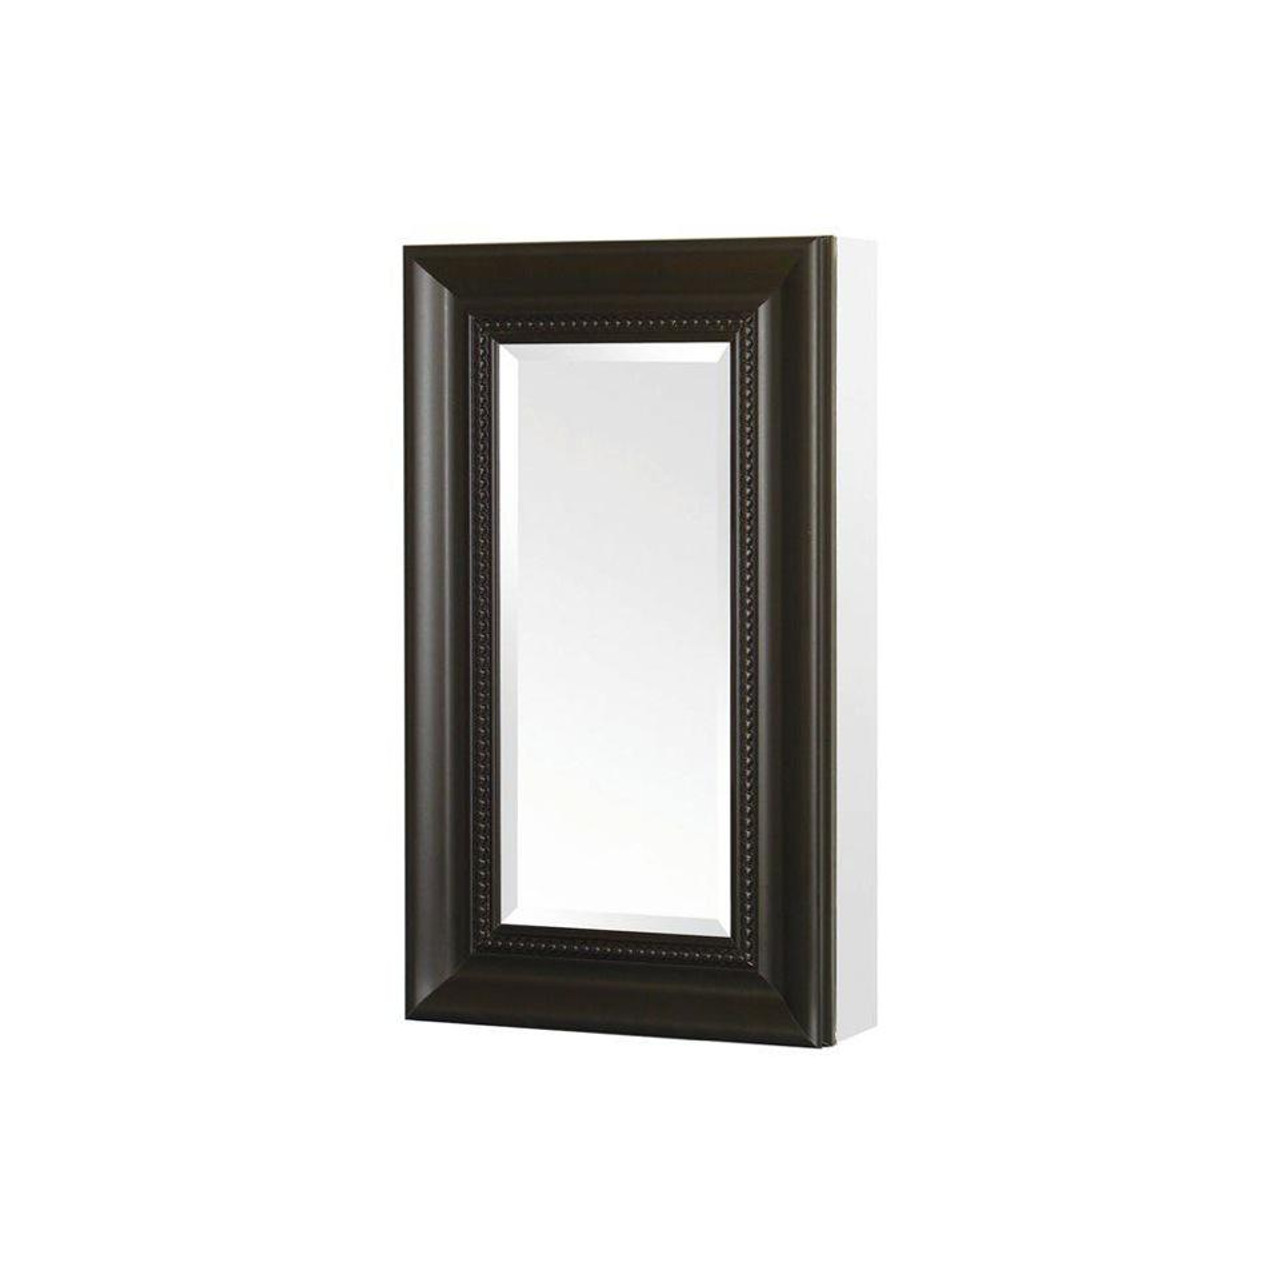 15 in. x 26 in. Recessed or Surface Mount Mirrored Medicine Cabinet with Framed Door in Espresso (PE-511410)